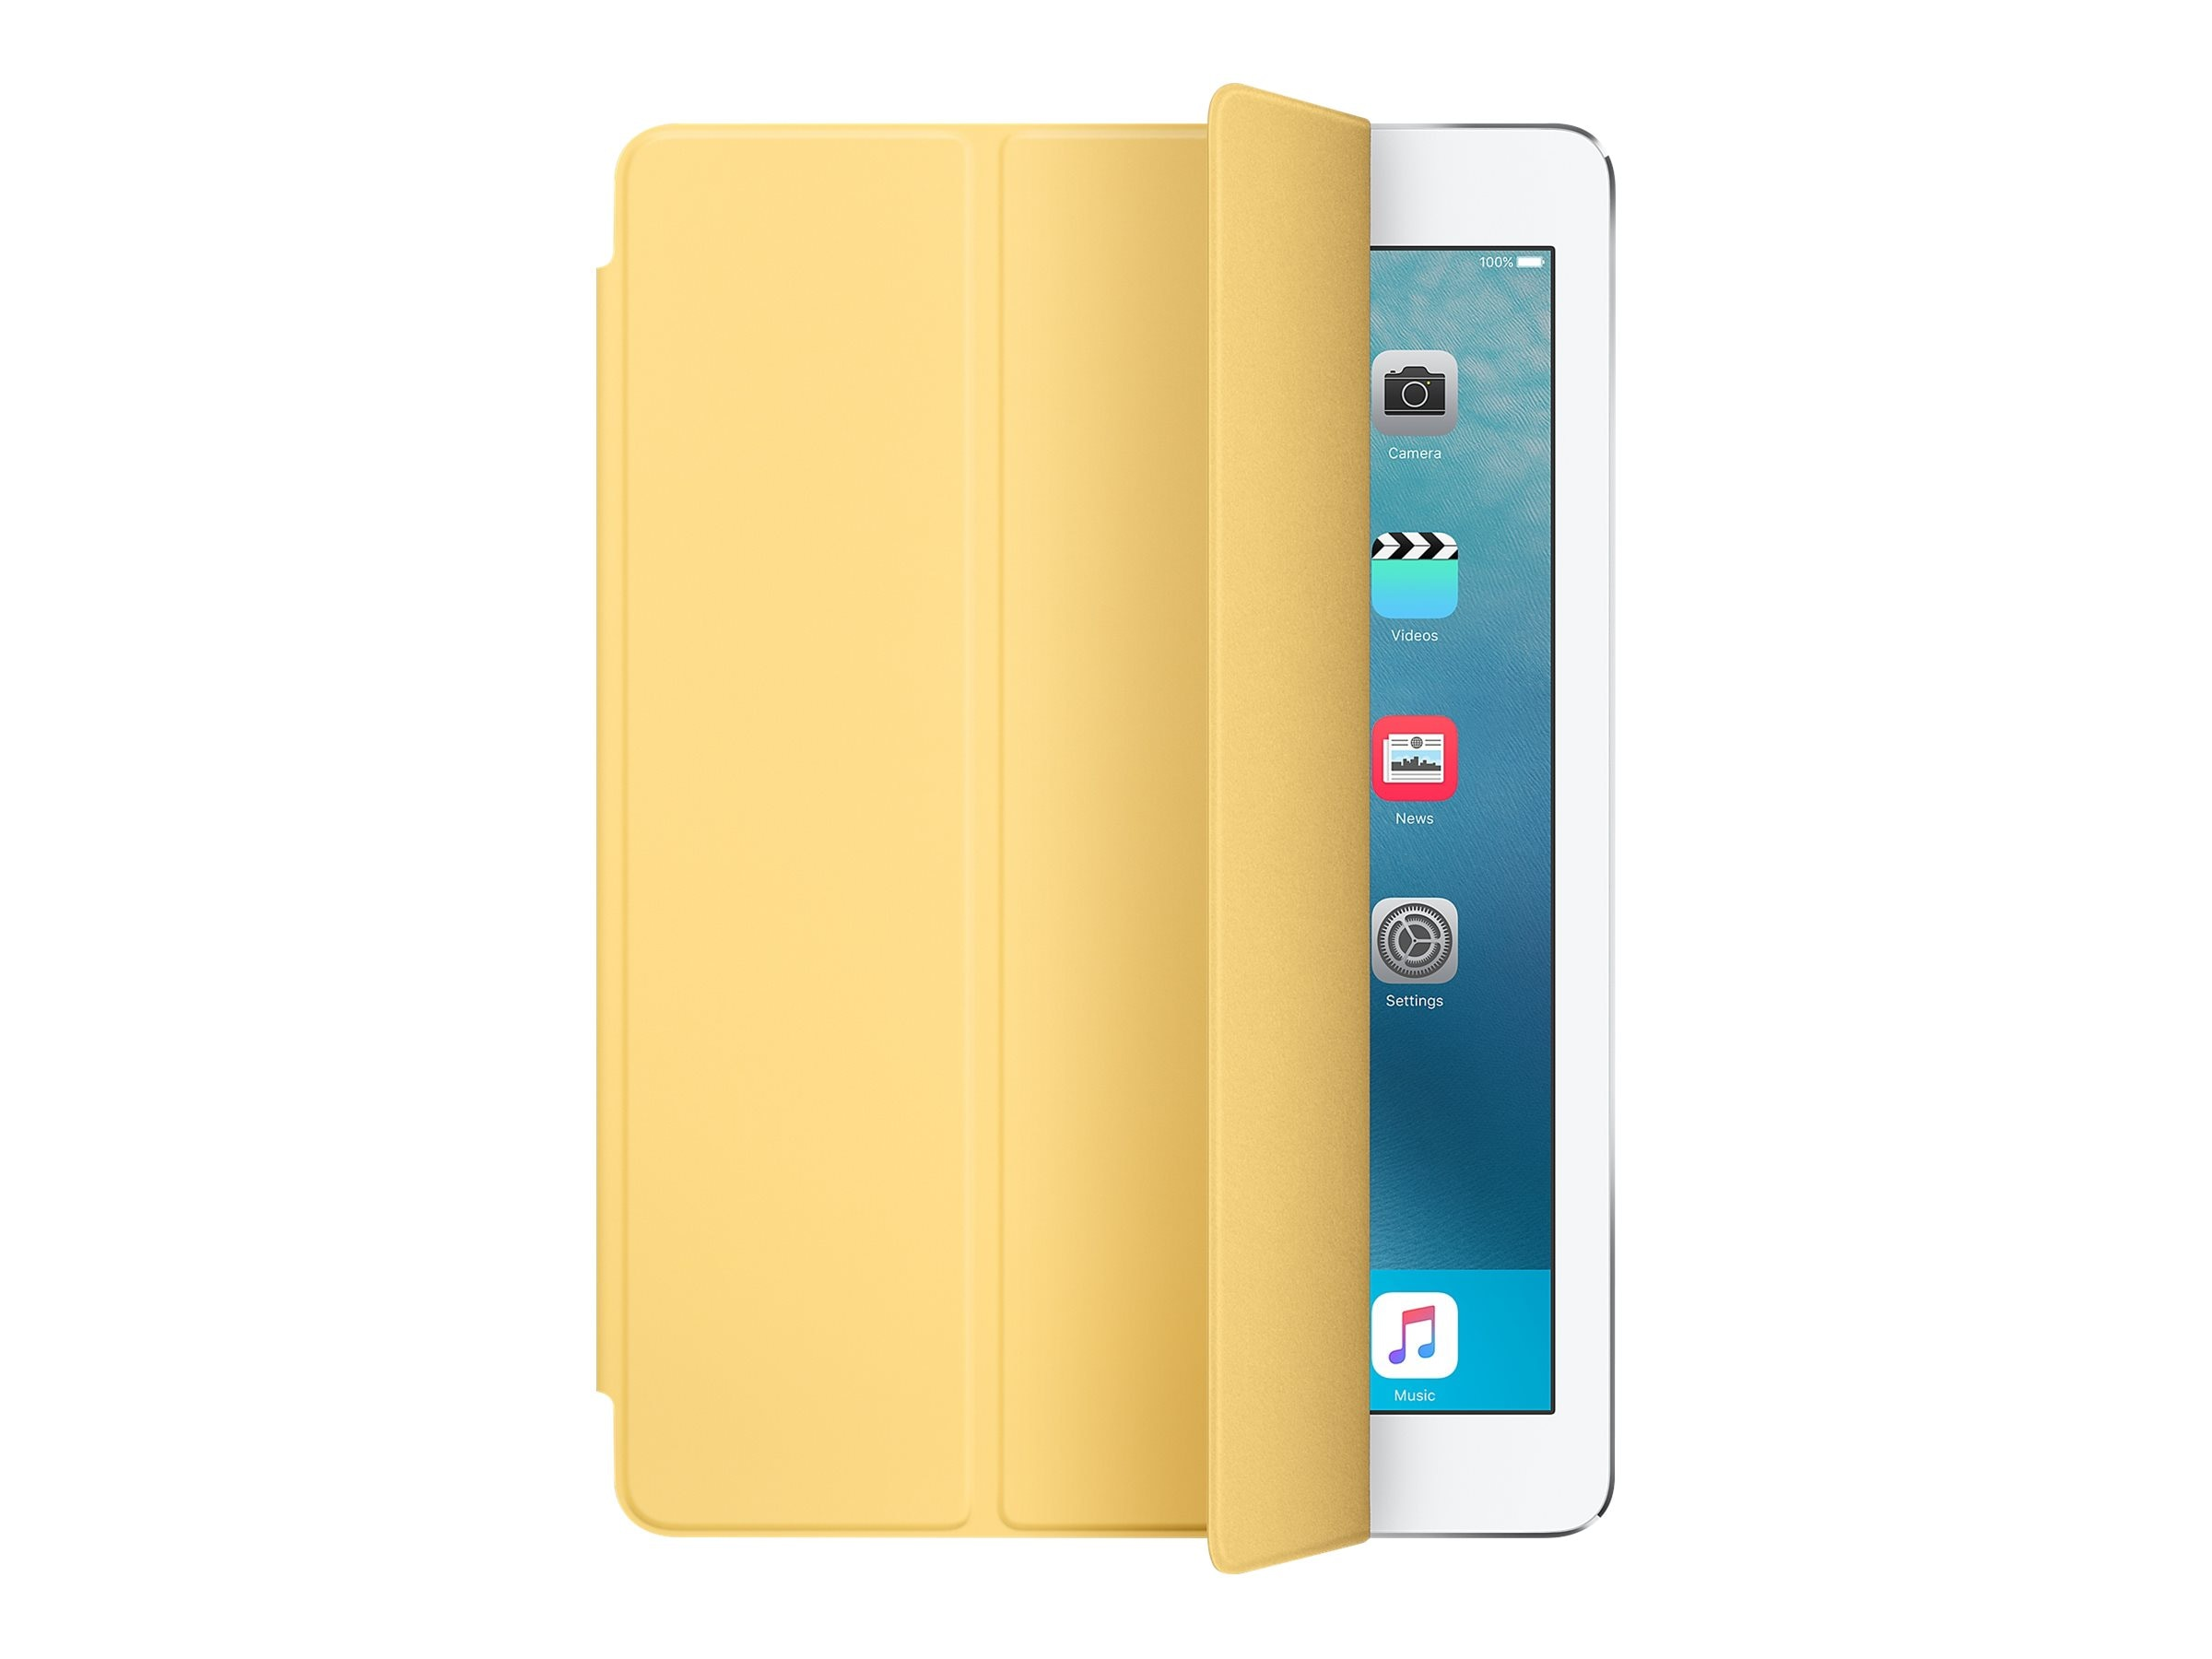 Apple Smart Cover for iPad Pro 9.7, Yellow, MM2K2AM/A